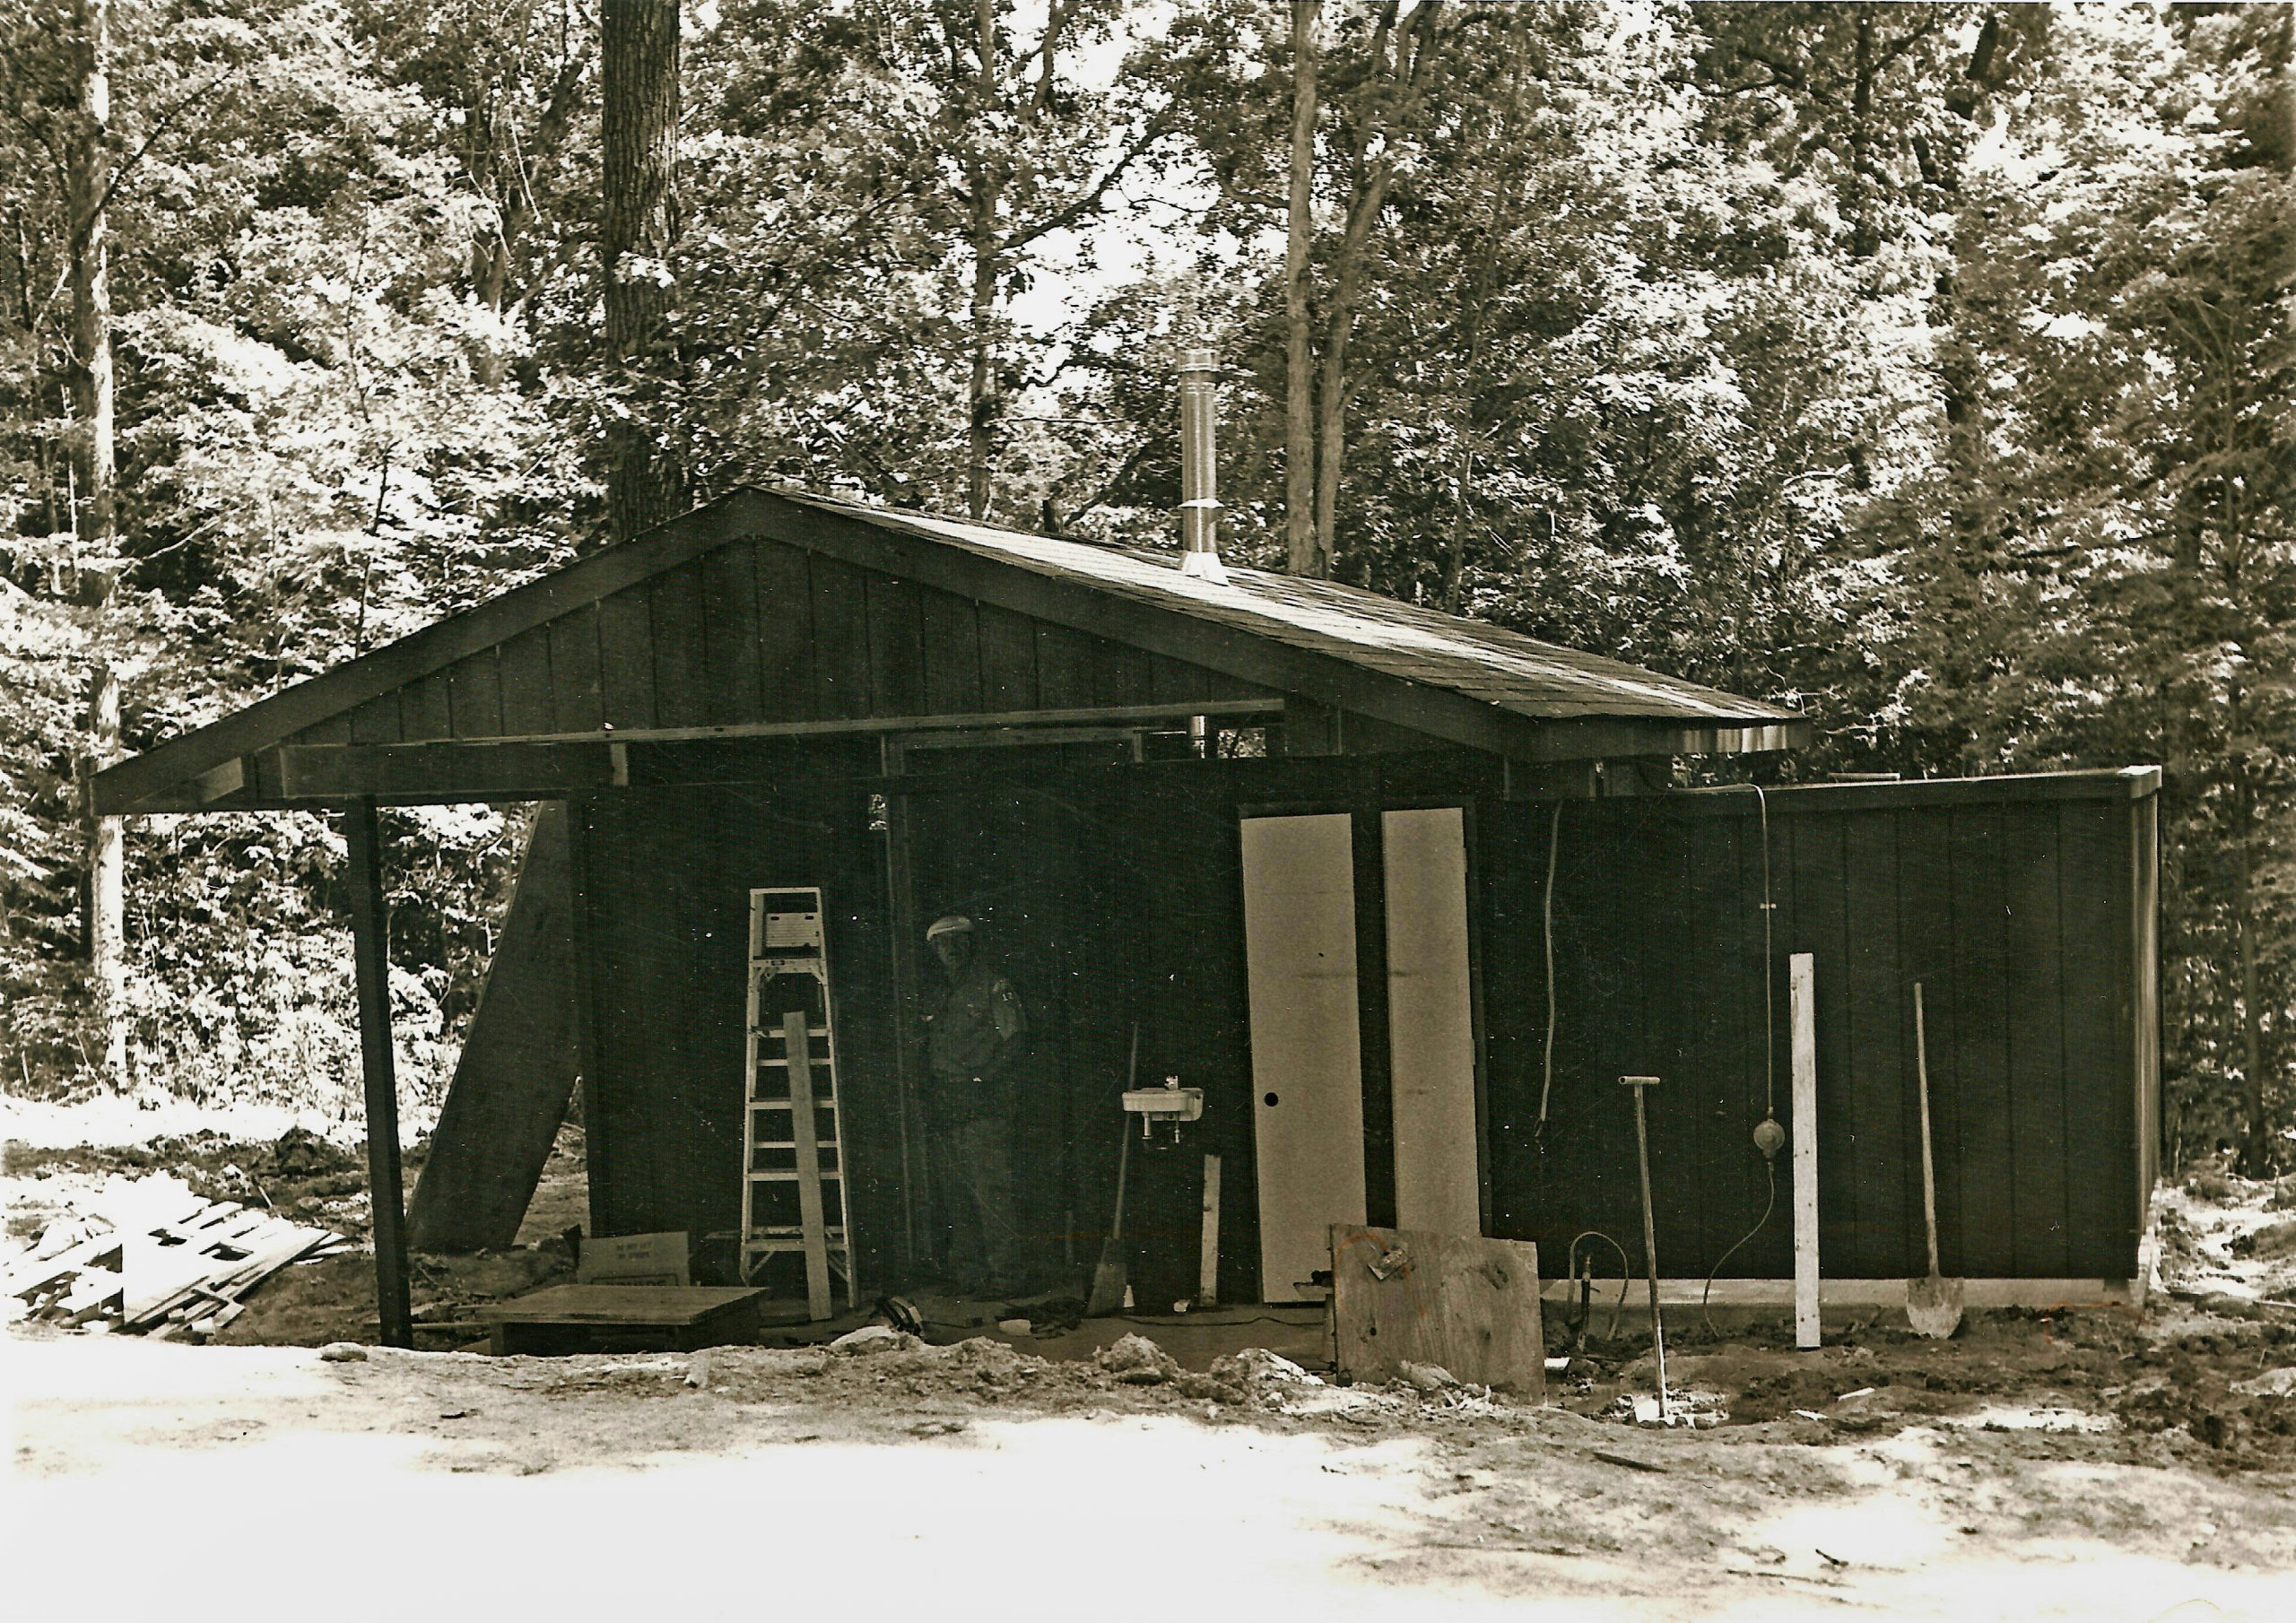 Showerhouse construction in 1979